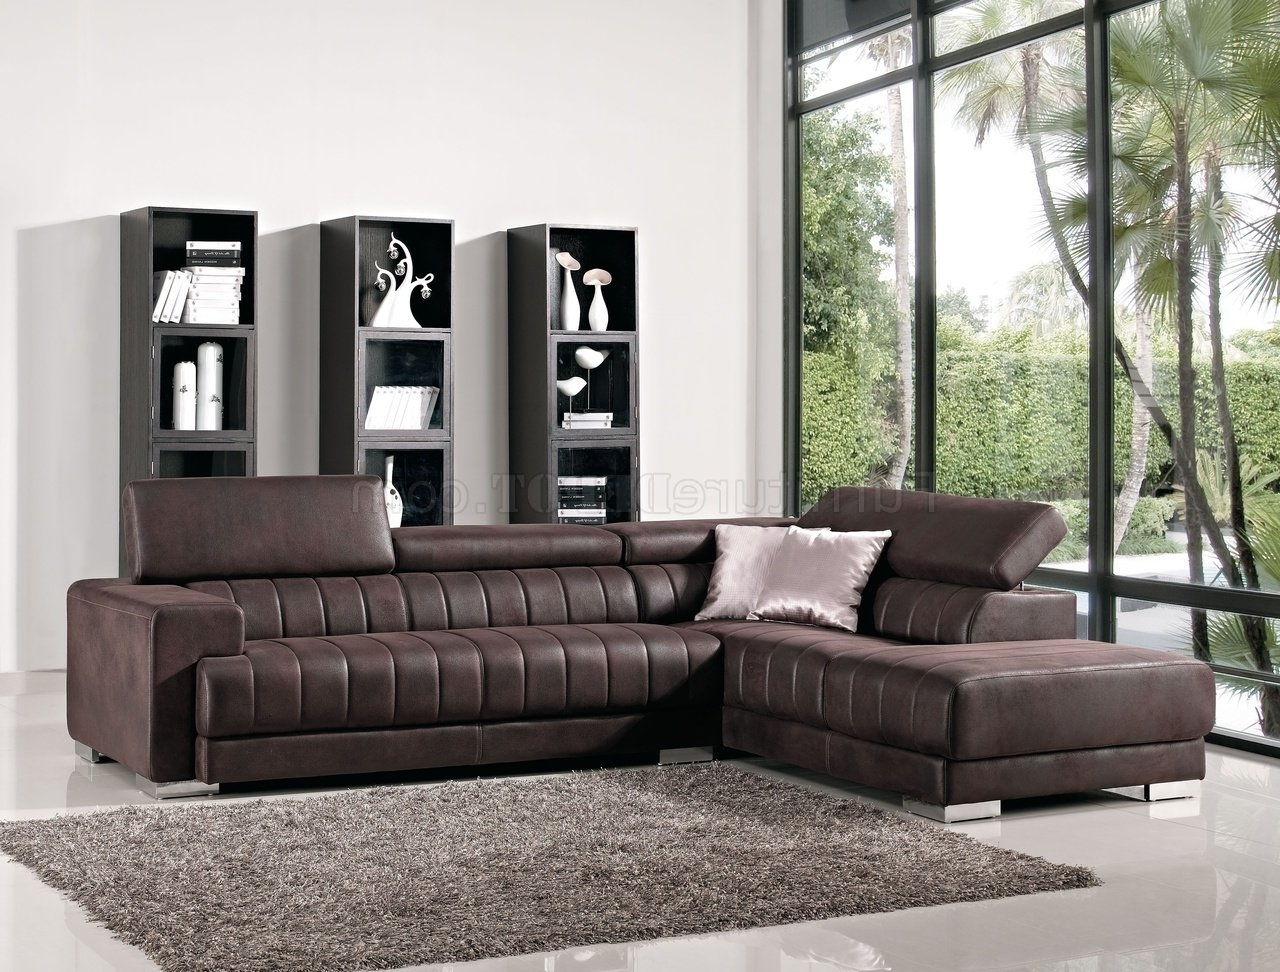 Contemporary Fabric Sofas With Regard To Preferred Brown Fabric Modern Sectional Sofa W/adjustable Headrest (View 13 of 20)